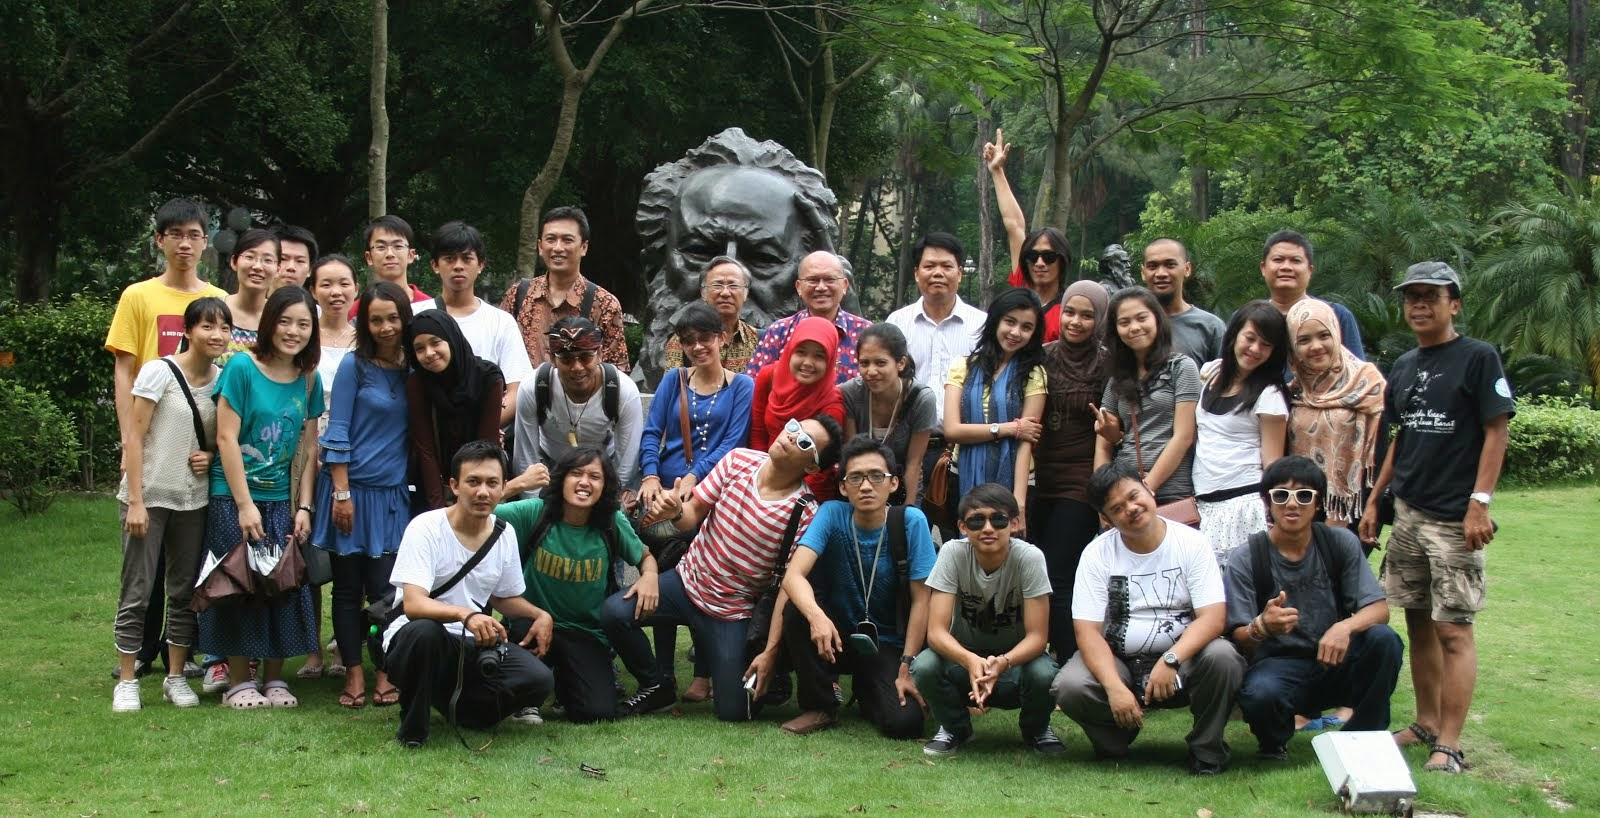 Foto Bersama di Guangdong University, China. 2011